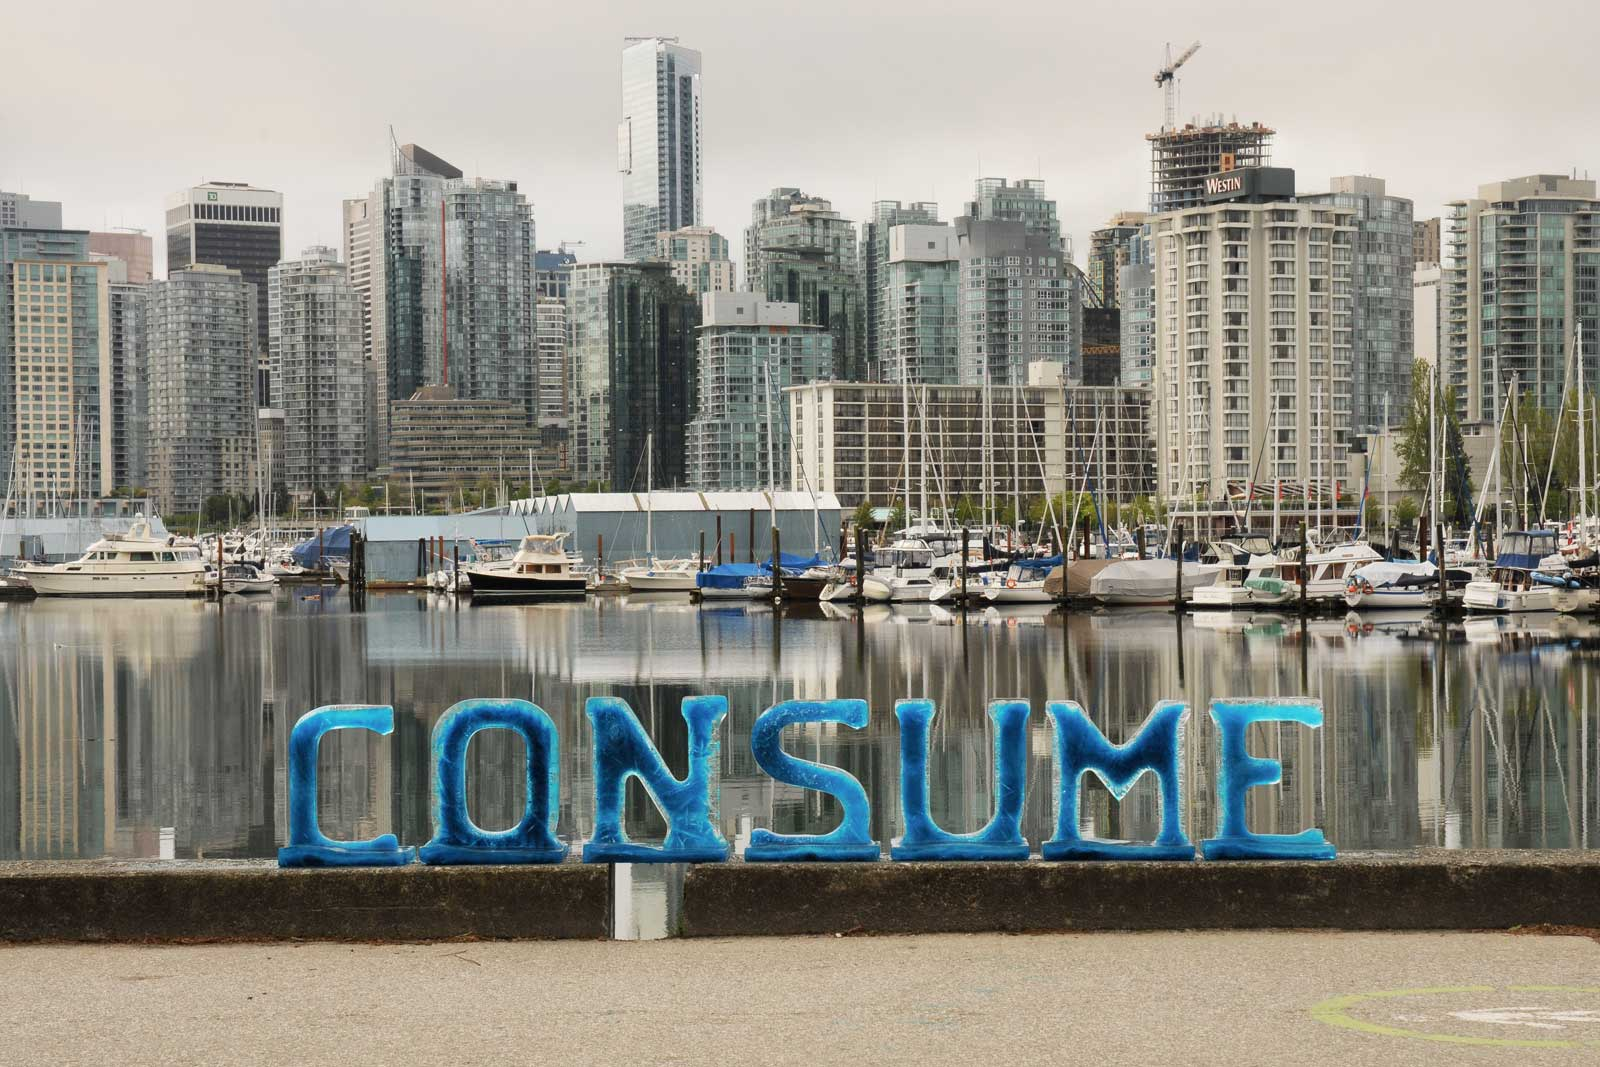 CONSUME spelled with ice letters with city in background